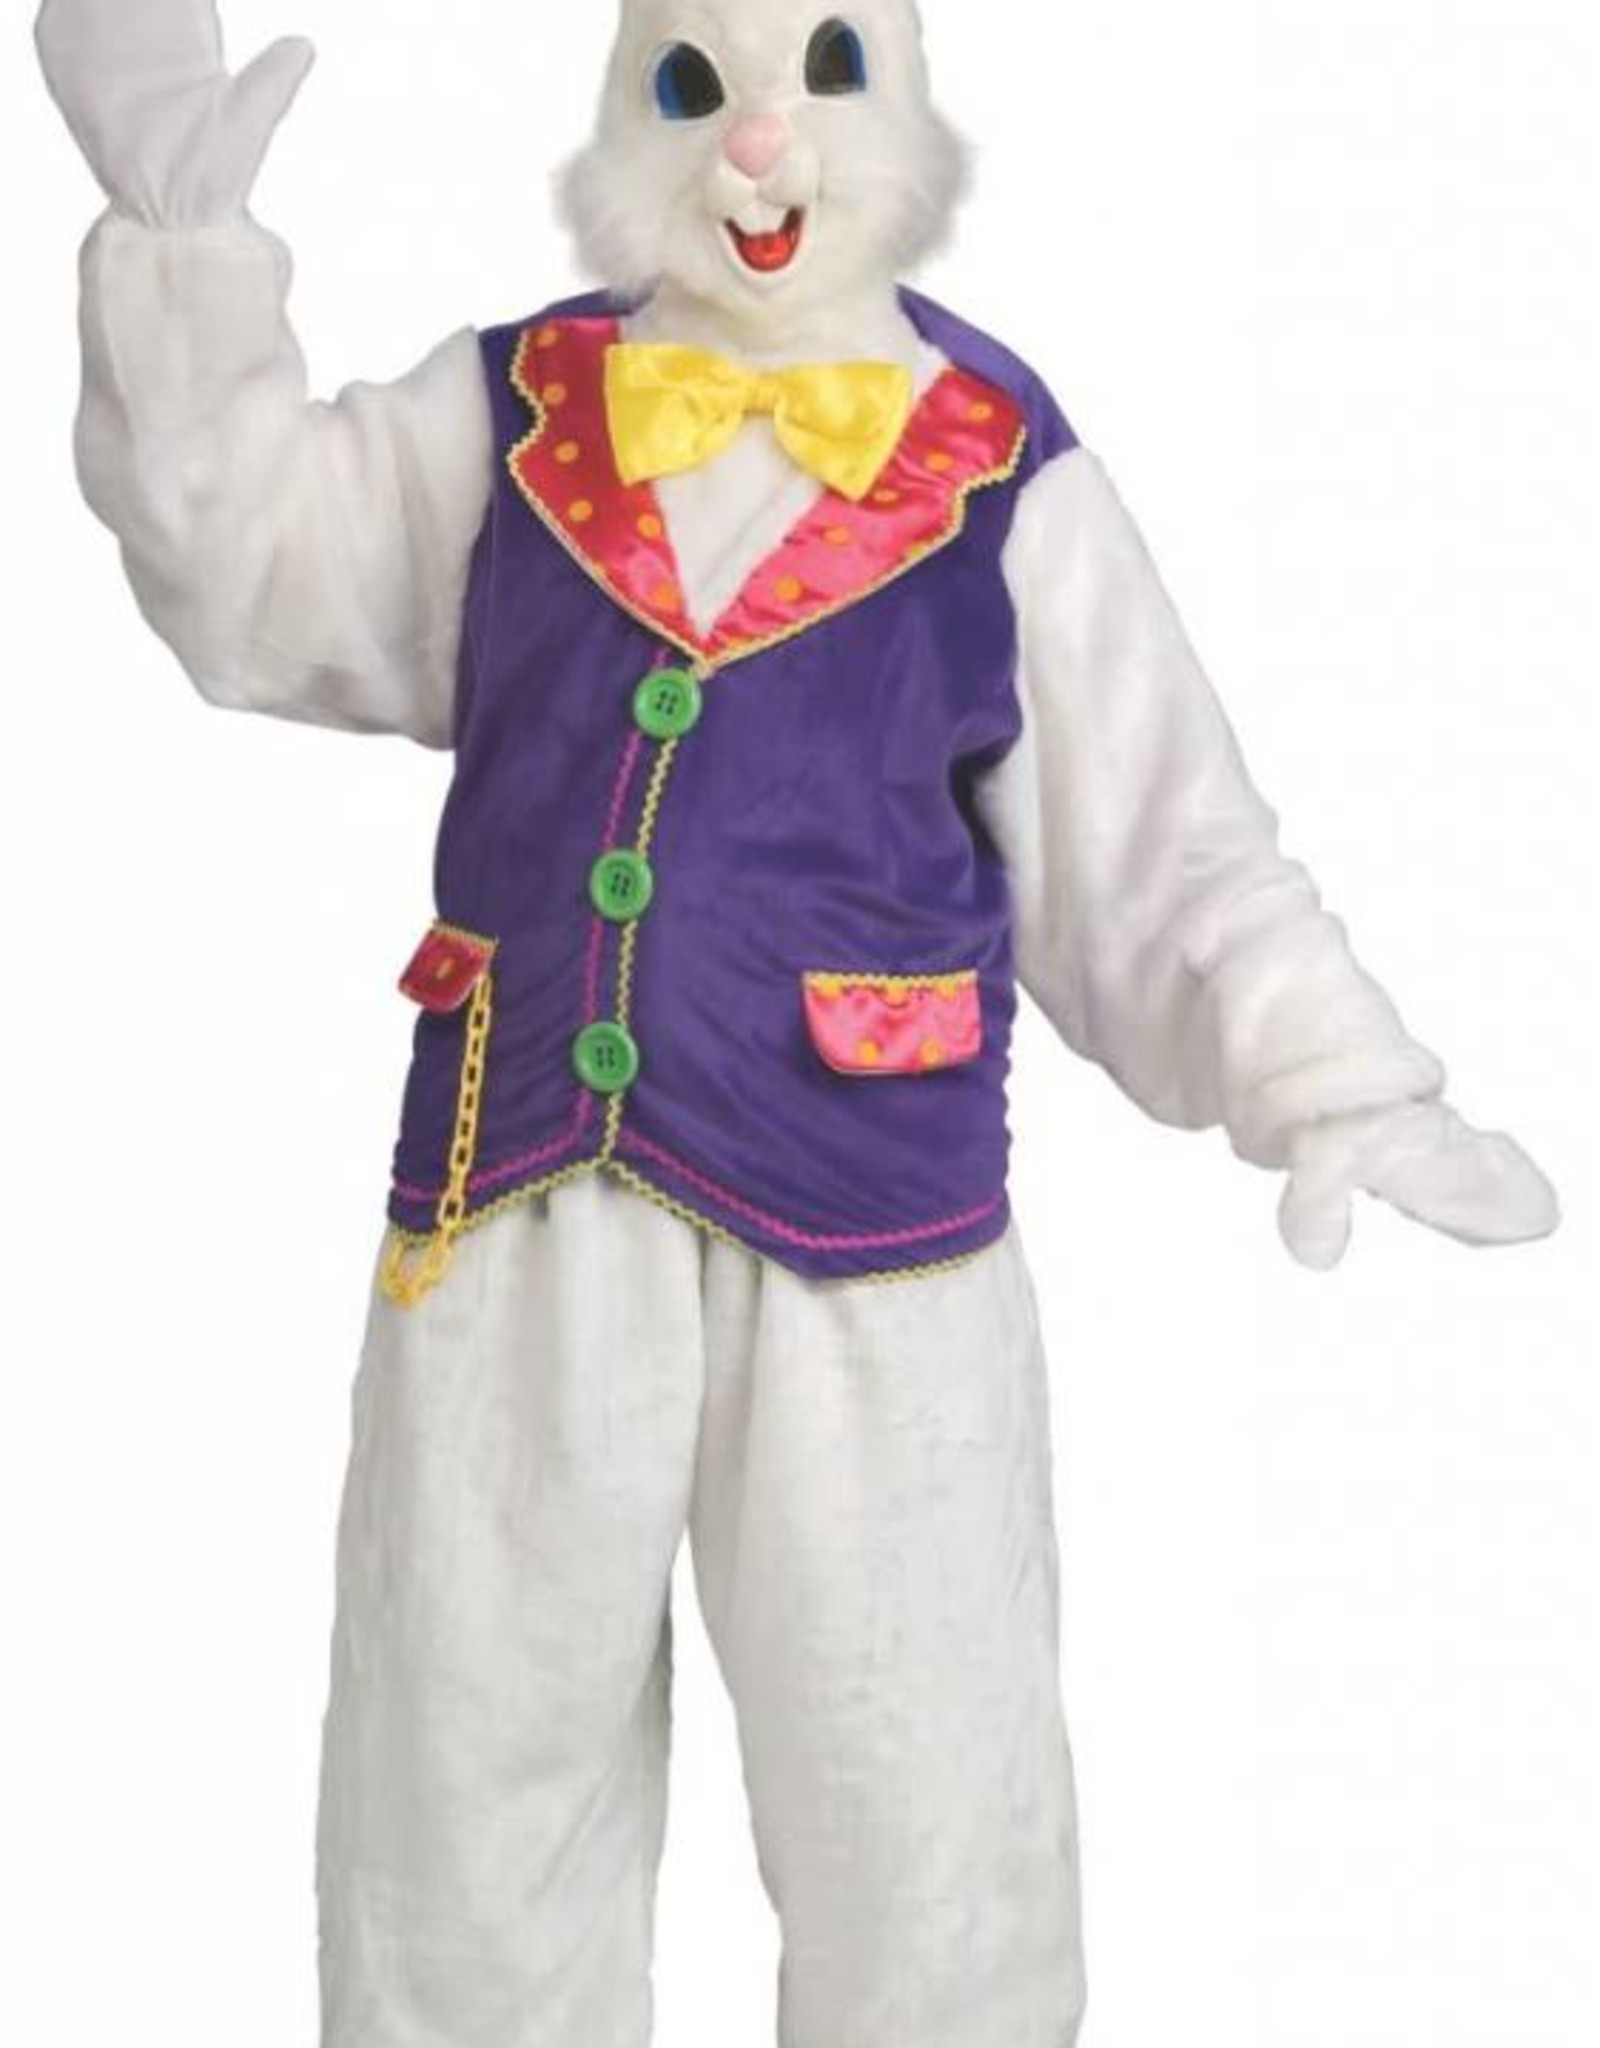 Bunny Costume White & Blue One Size